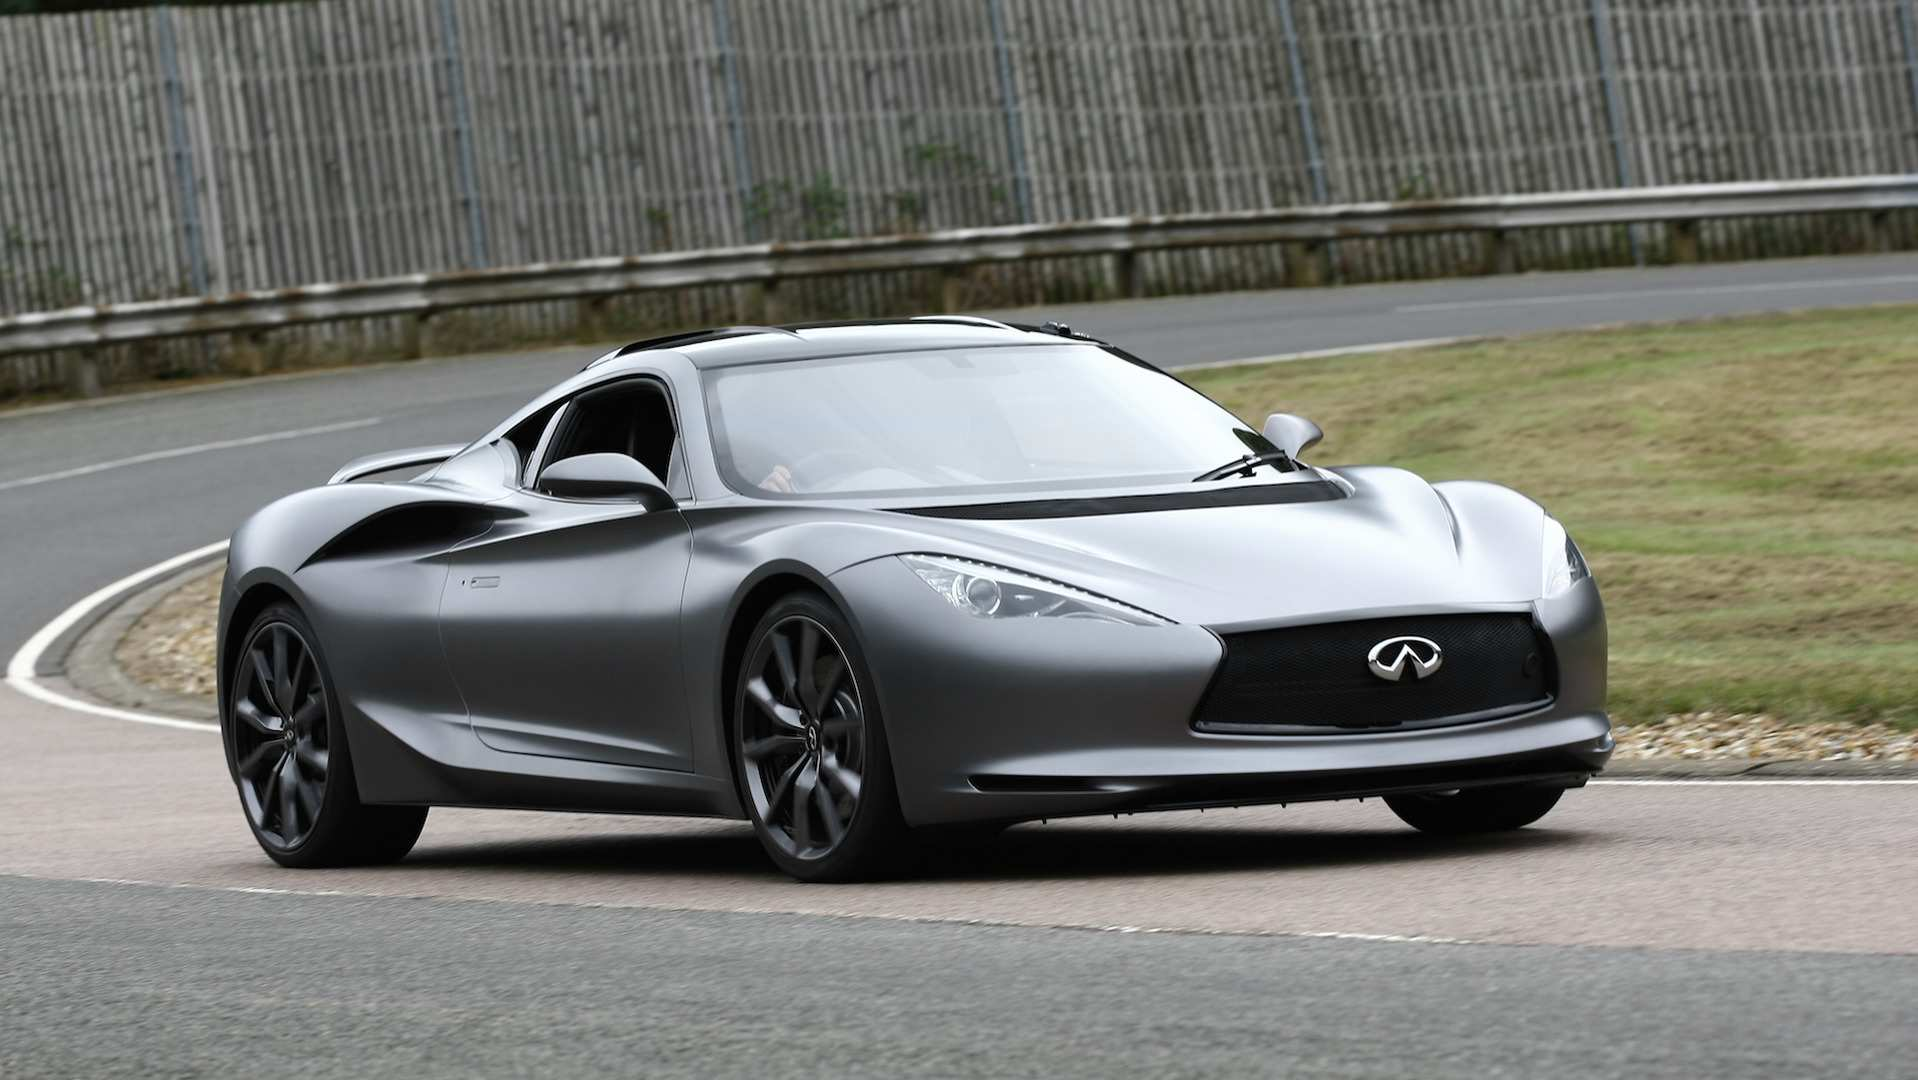 27 Gallery of 2020 Infiniti New Concept Speed Test for 2020 Infiniti New Concept